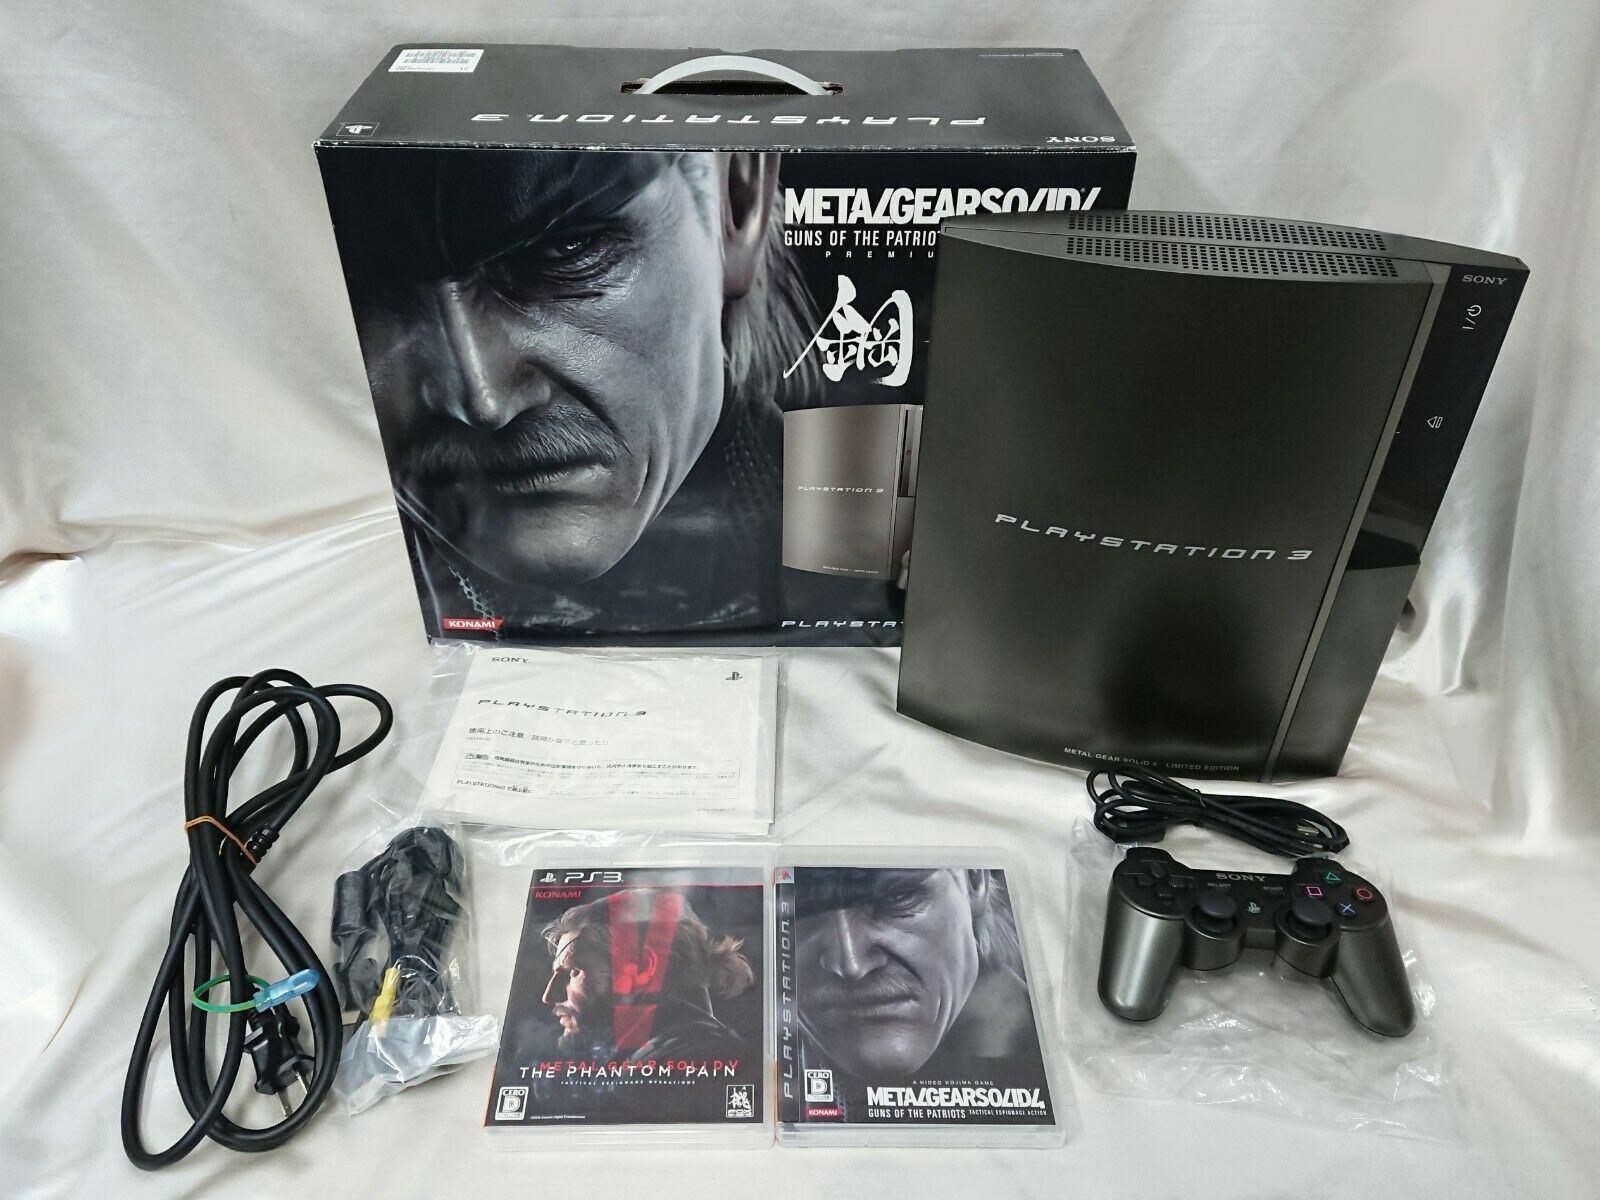 Playstation3 Ps3 Console Metal Gear Solid 4 Limited Edition Hagane Premium Pack For Sale Online